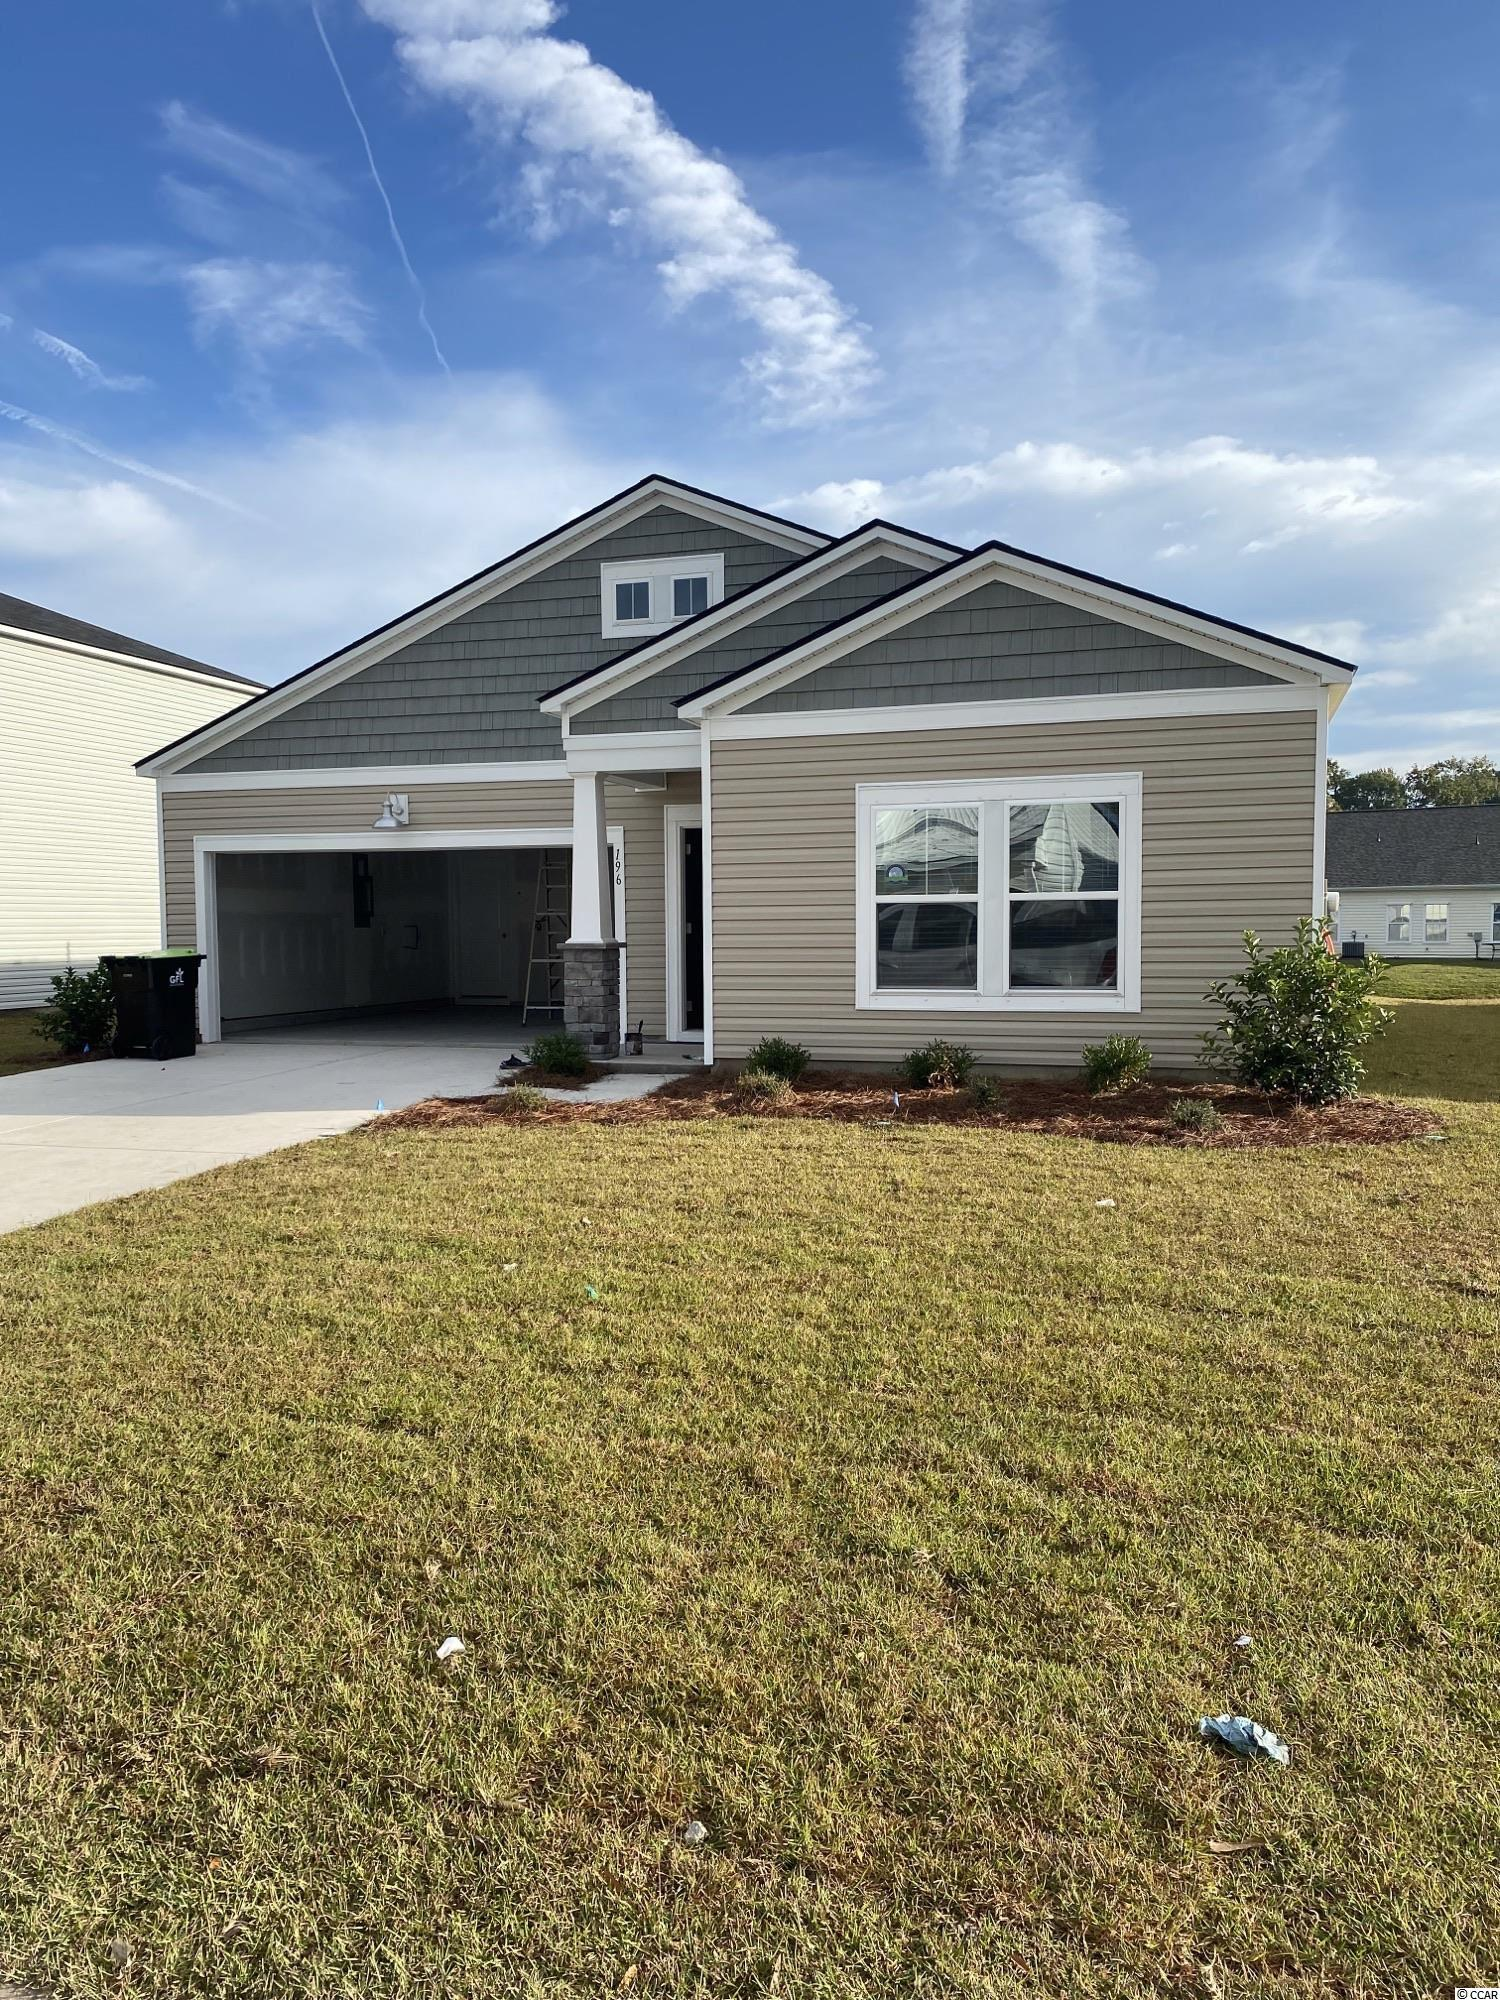 """These pictures are of a """"Similar Home"""", it is a MODEL home with extra options.  Beach Village is our newest community located in Deerfield. This Dover is 3 bedroom 2 bath. This home features Granite kitchen countertops with subway tile. Stainless steel appliances and Laminate flooring. A gas community with a tankless water heater and gas stove.  Low HOA, Internet & Cable"""